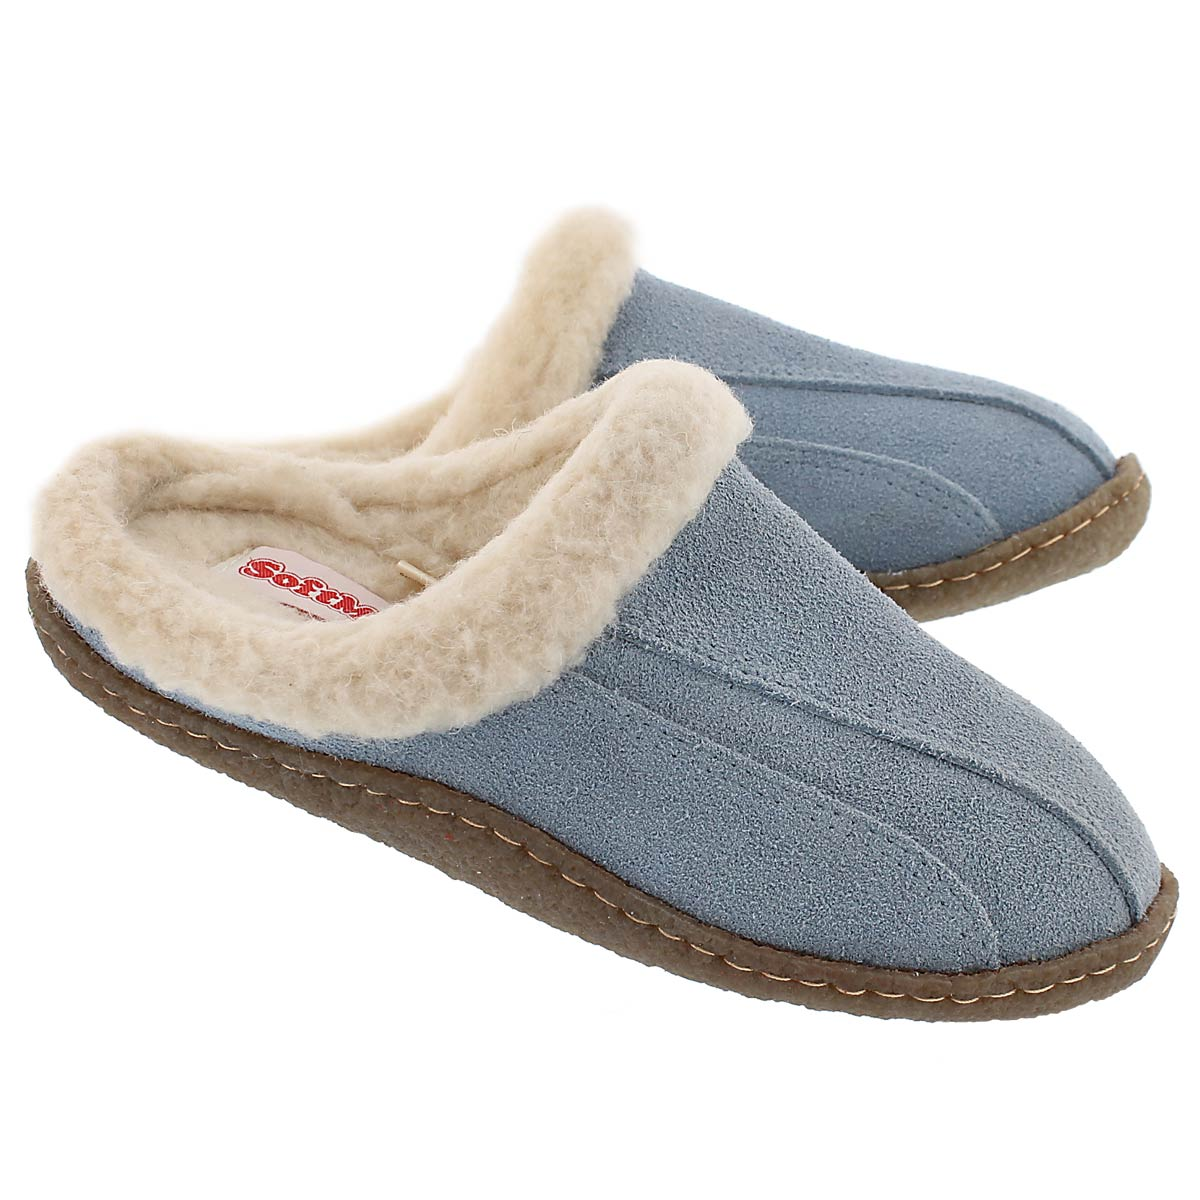 Lds Galaxie III blue open back slipper